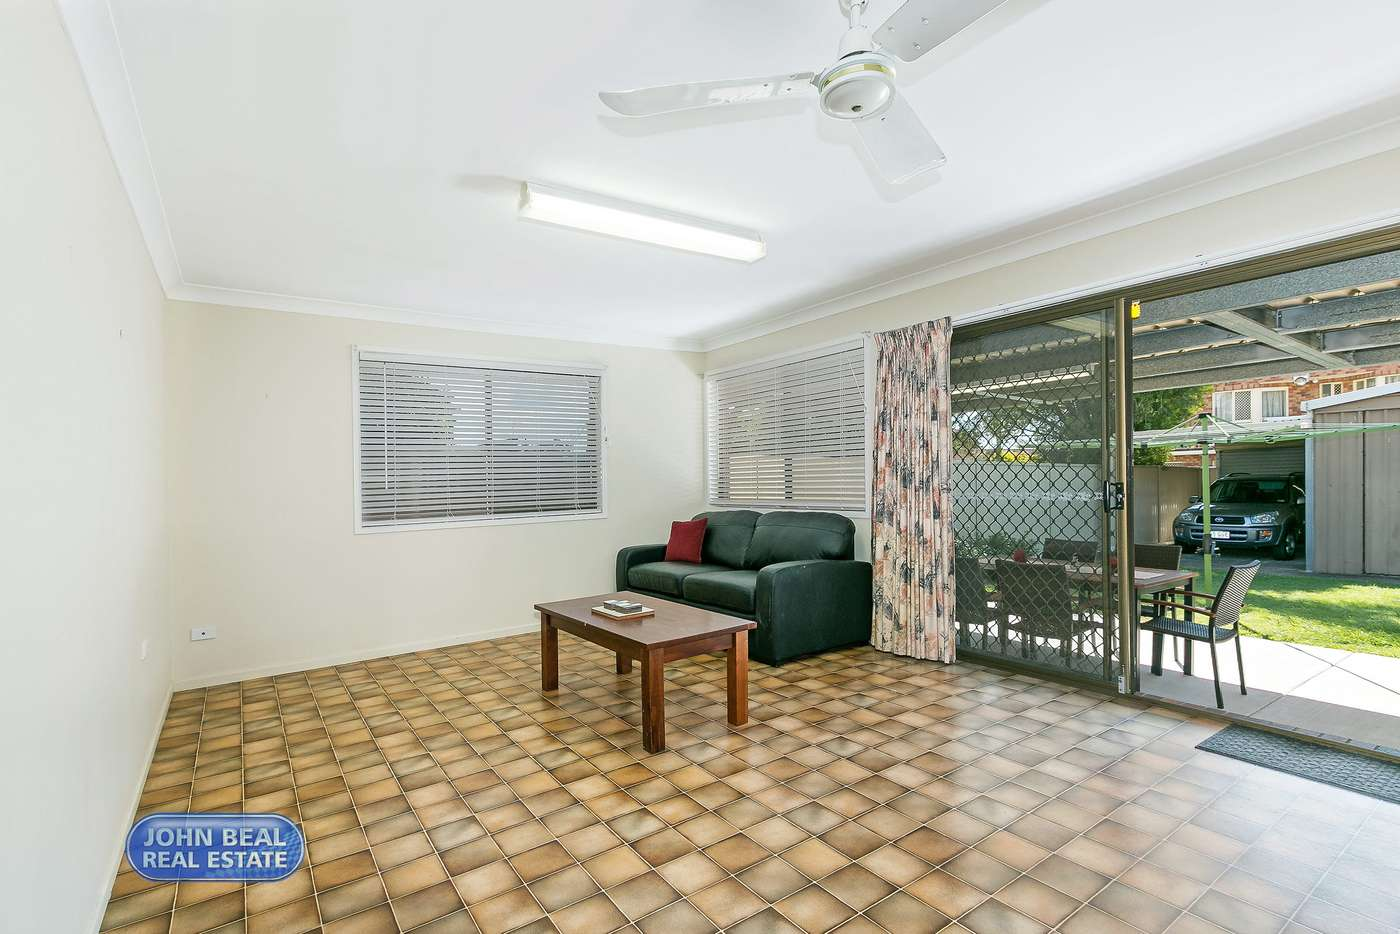 Sixth view of Homely house listing, 34 Klingner Rd, Redcliffe QLD 4020